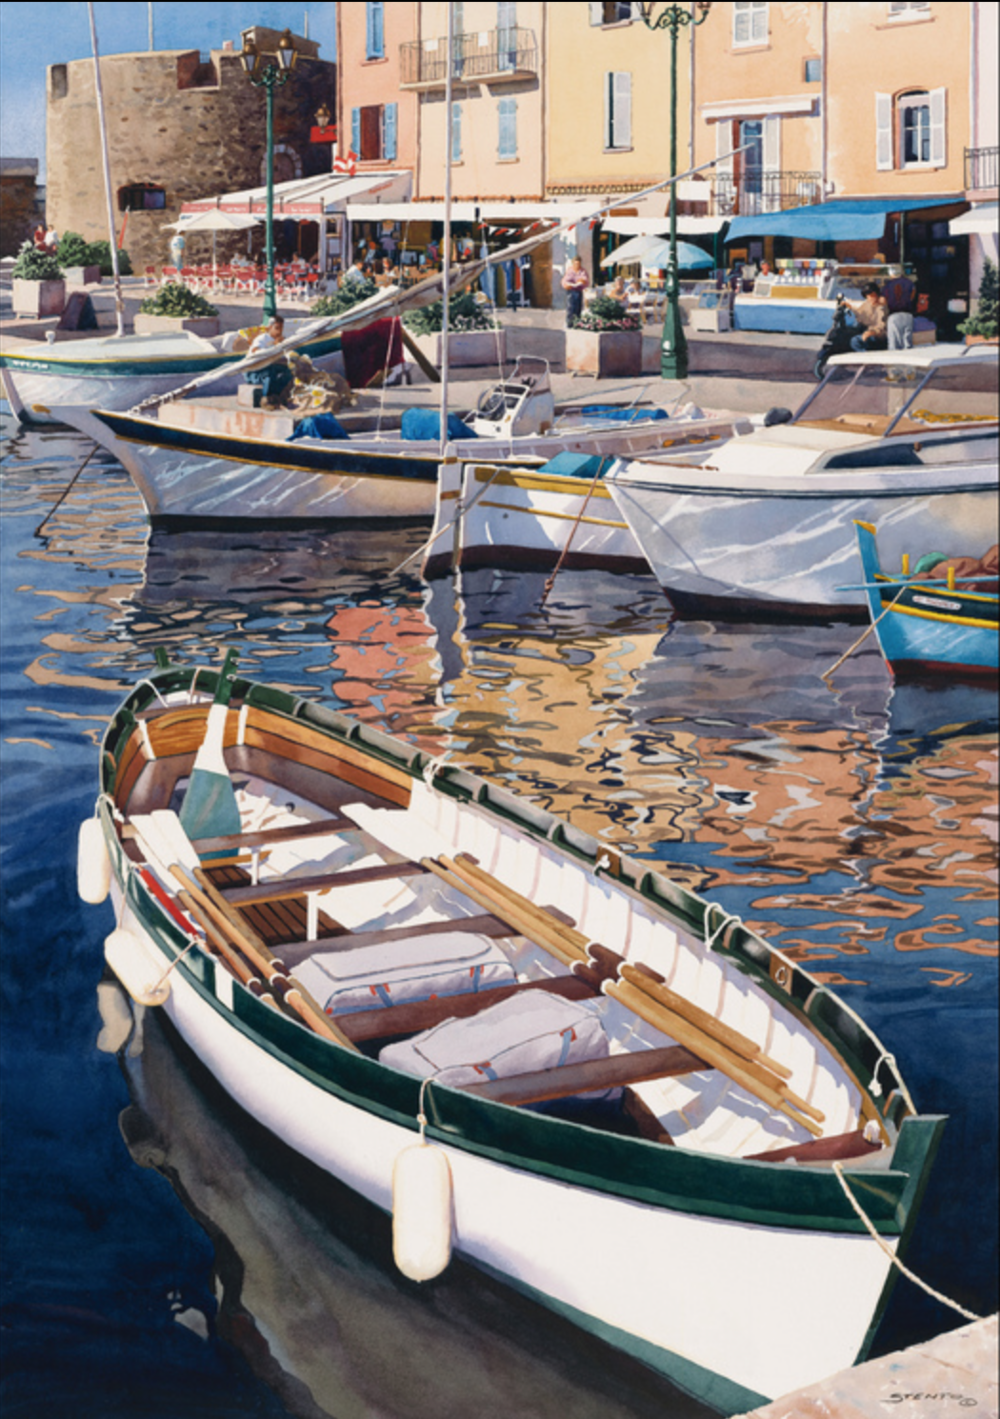 Steve Stento - http://www.stevestento.comI create my watercolors in the traditional manner by applying layers of transparent paint to build a rich, painterly realism that captures the emotion of the scenes I paint.